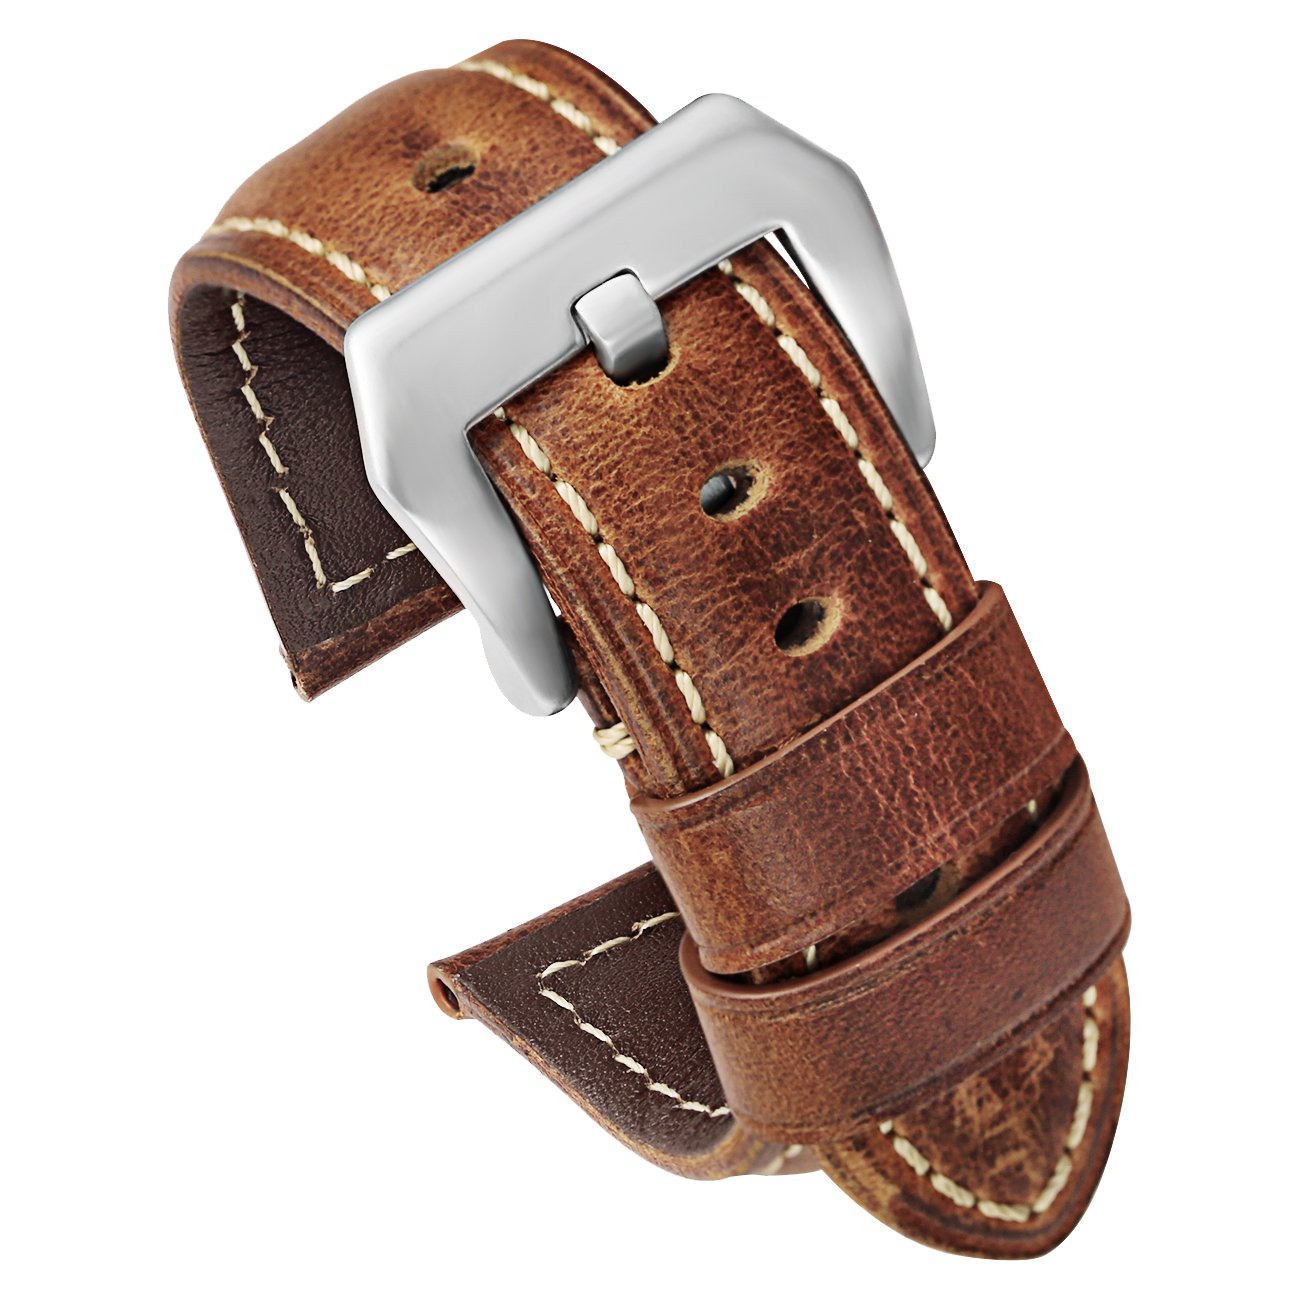 Brown Leather Watch Strap 22mm Replacement Watch Band with Silver Stainless Buckle Calfskin